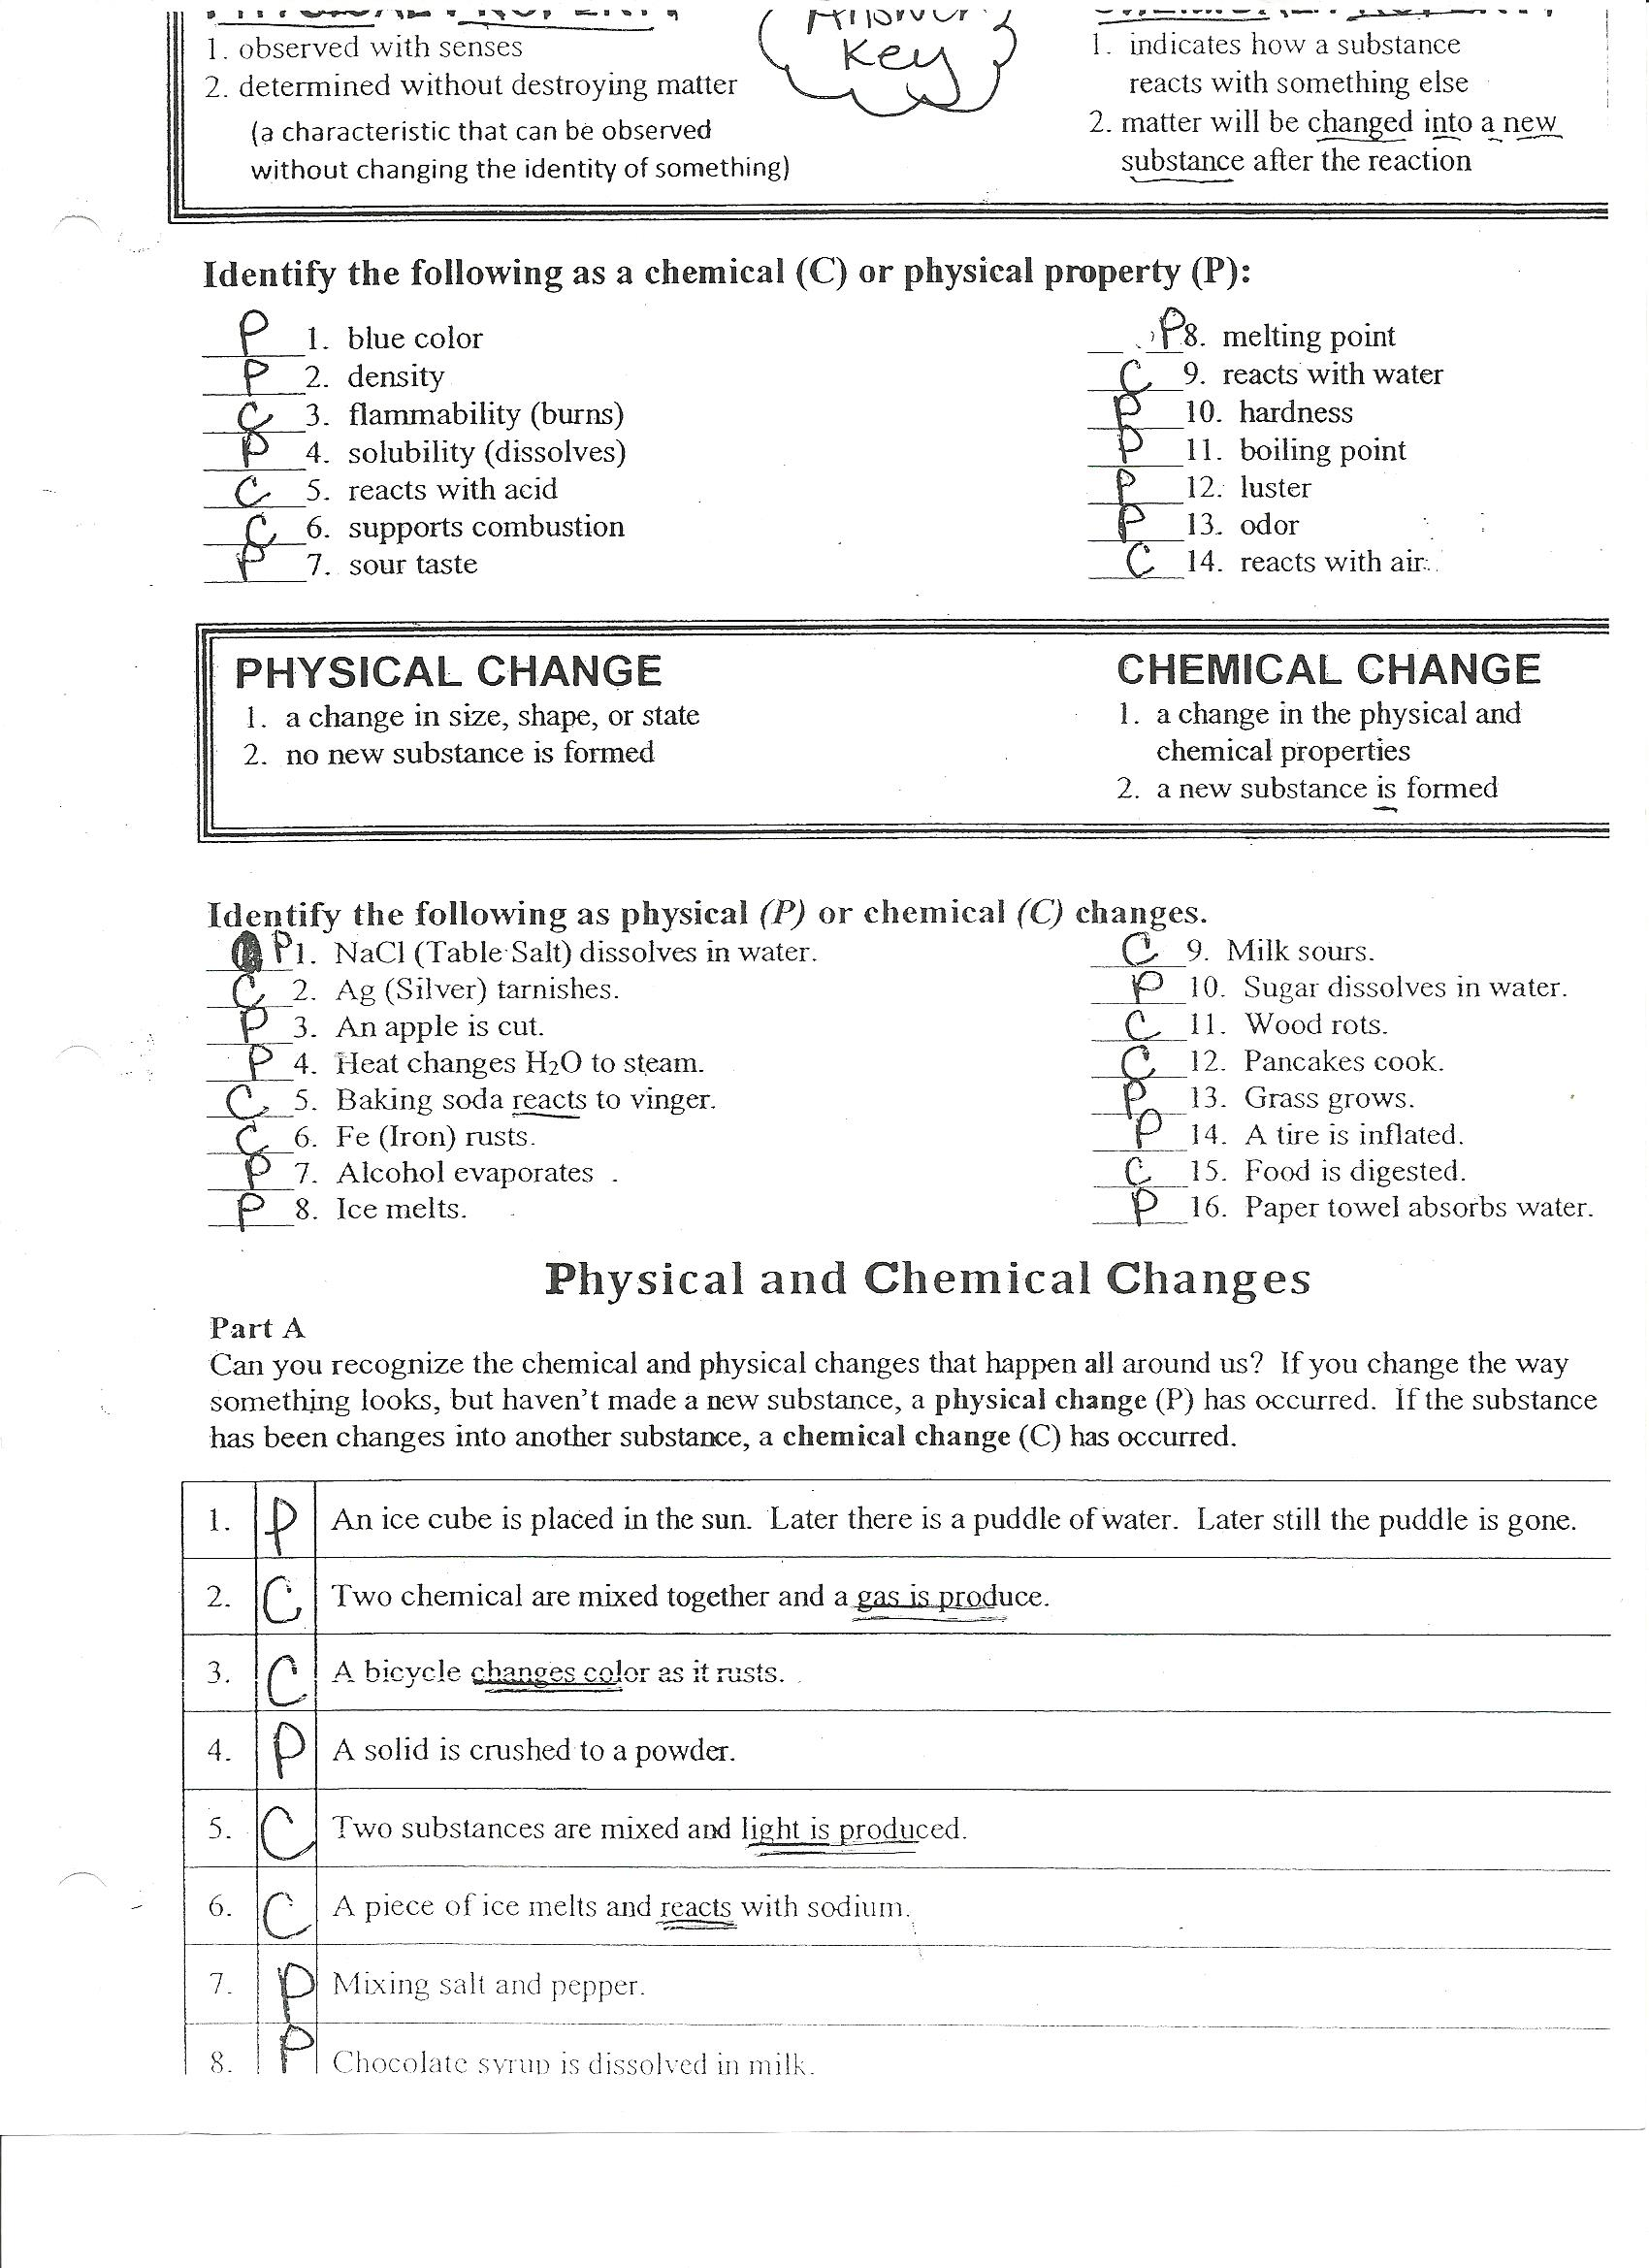 Worksheets Physical And Chemical Properties Worksheet 6th Grade cherry marcie science resources physicalchemical worksheet side 1